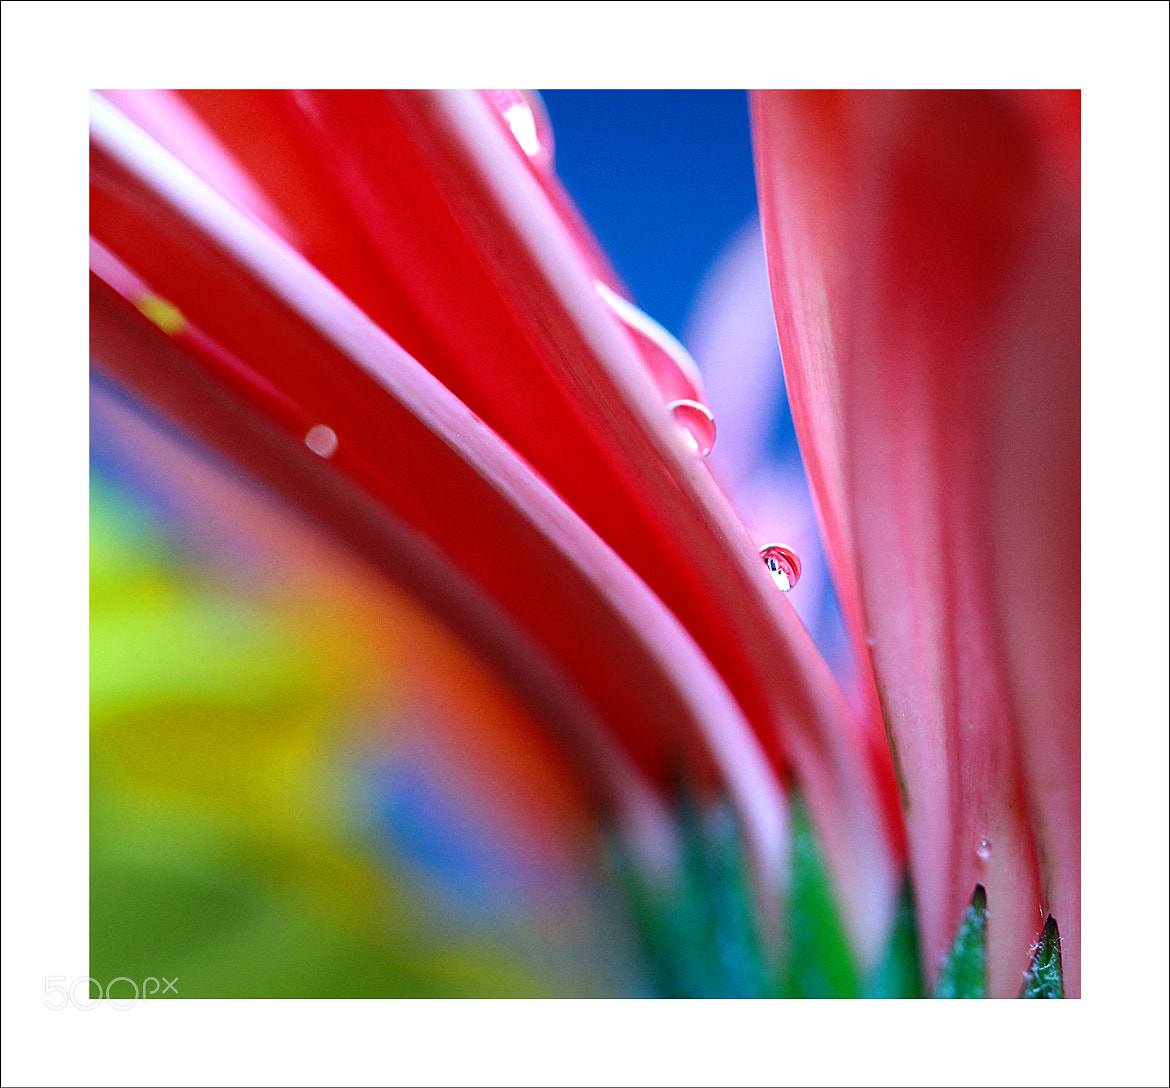 Photograph Macro Shot by Vo Duy on 500px